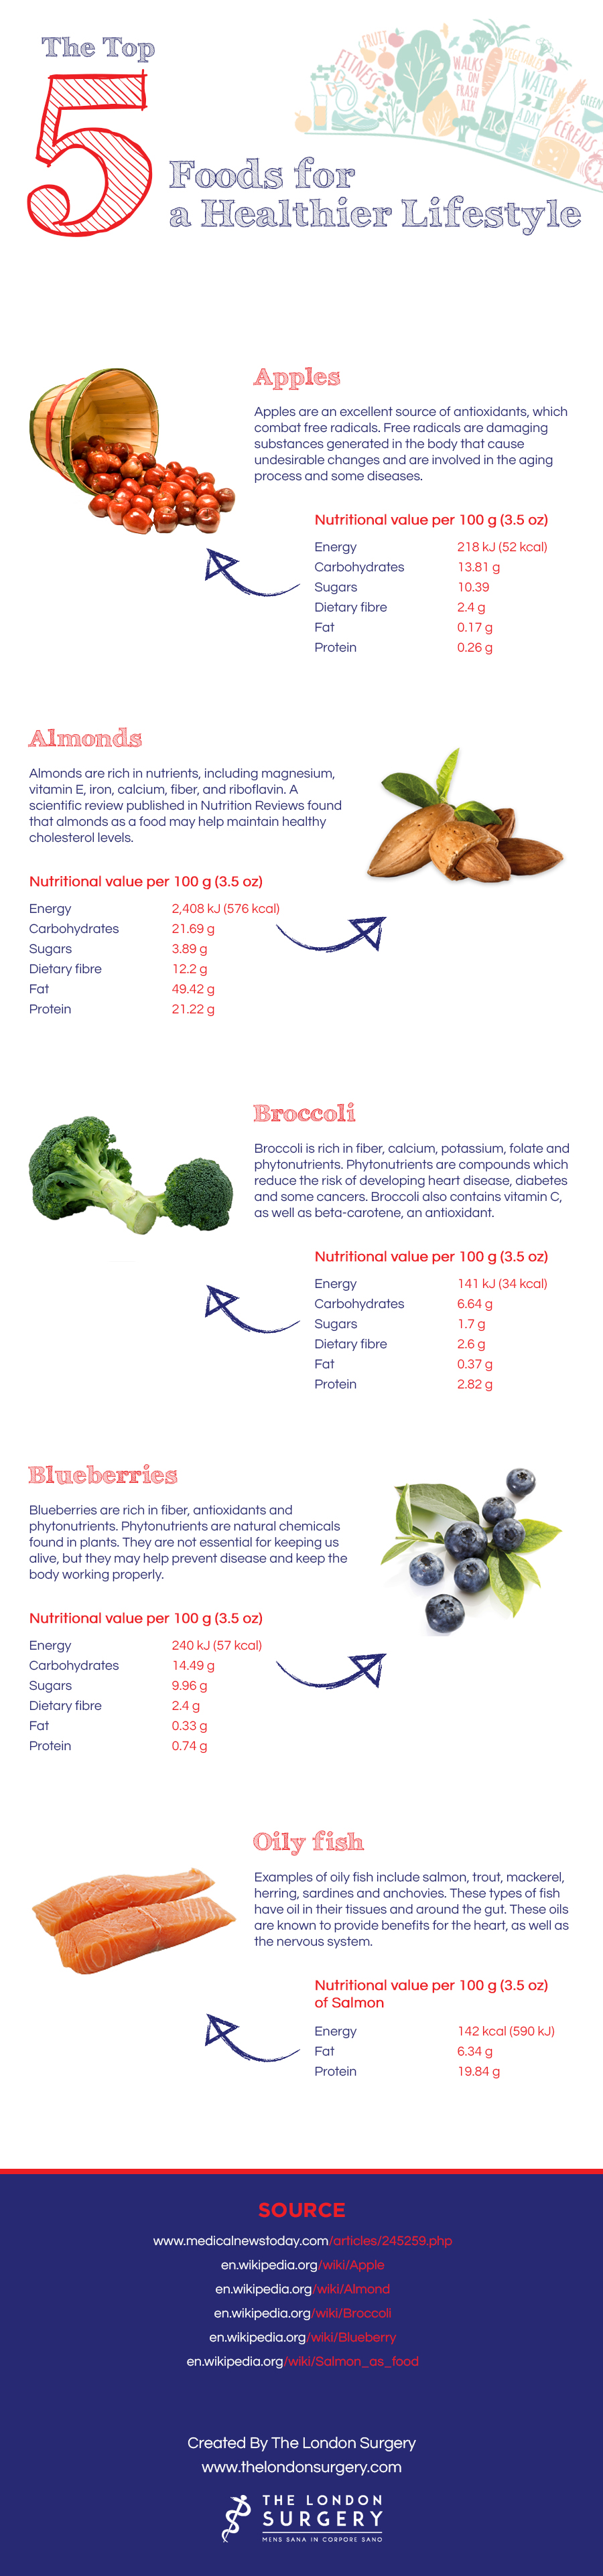 The Top 5 Foods For A Healthier Lifestyle